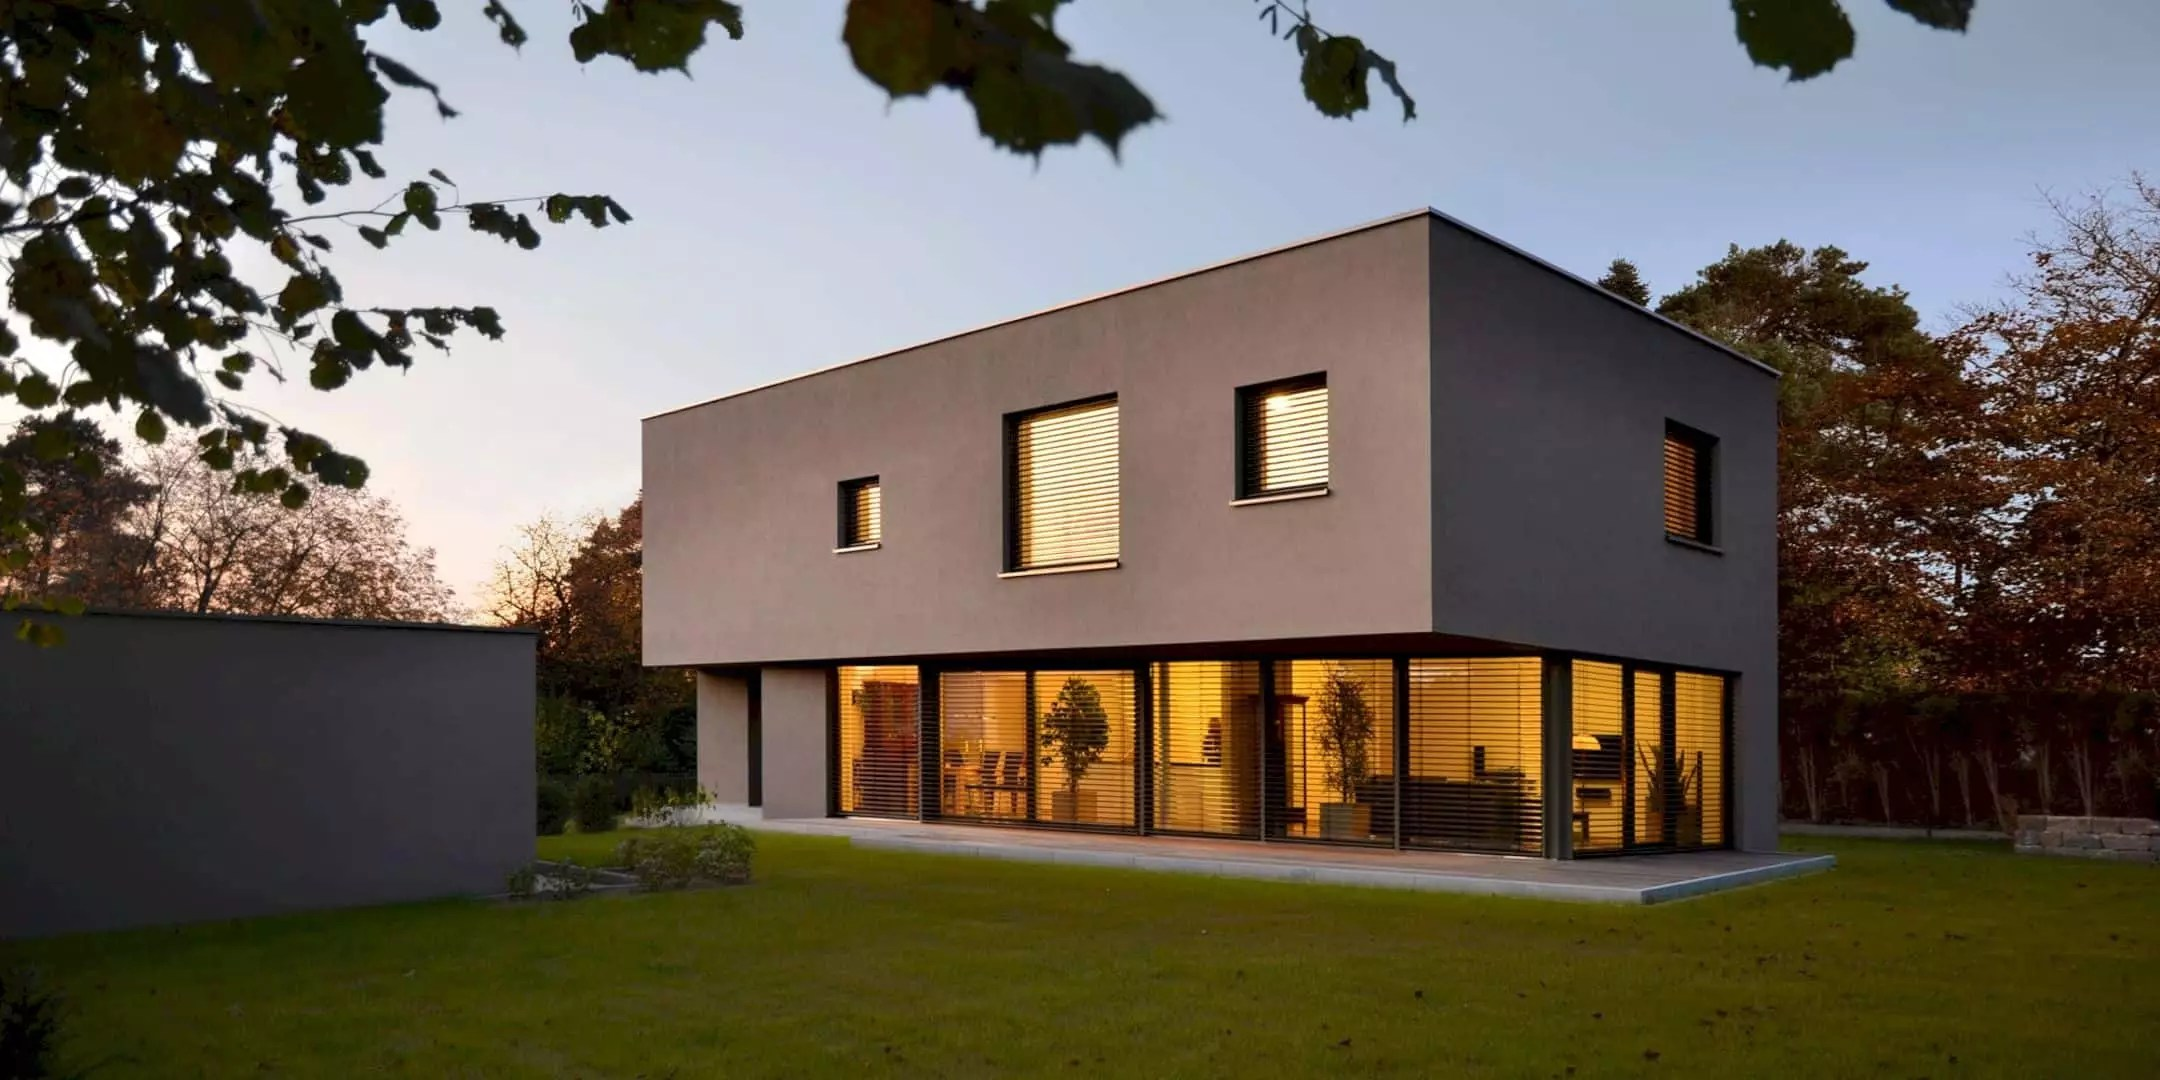 Bauhaus Villa Bauhaus Villa A Detached House In Forchheim Futurist Architecture